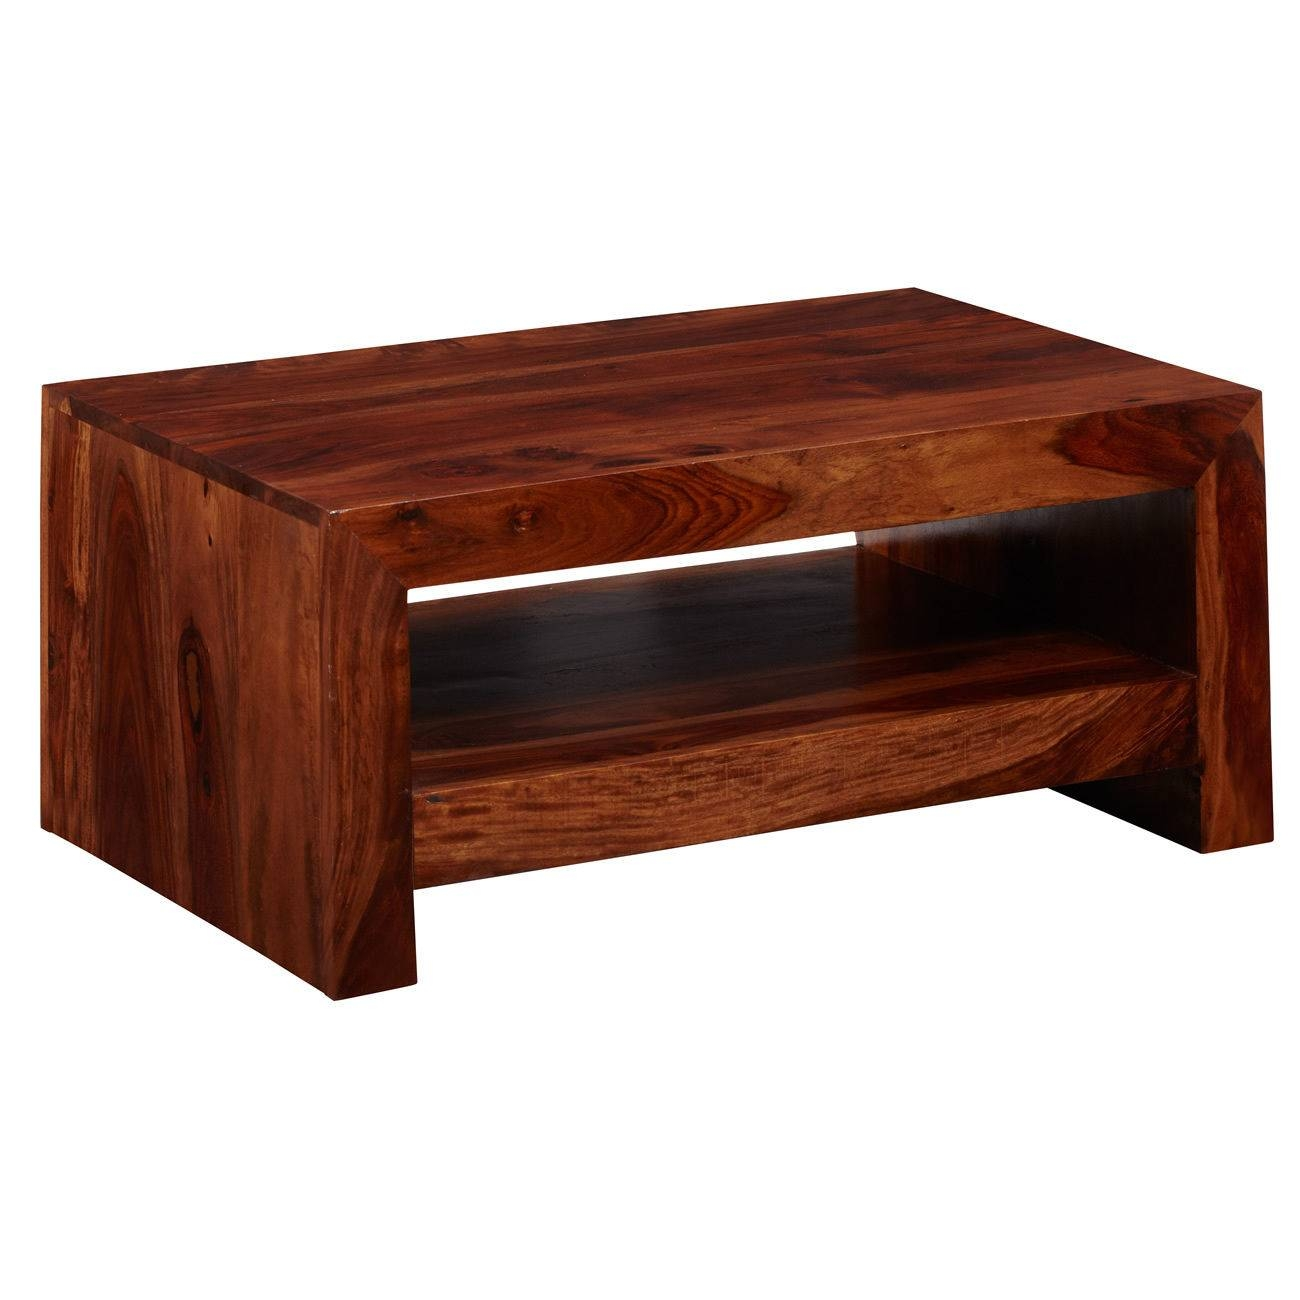 Coffee Tables Ideas: Top Hardwood Coffee Table Plans Wooden Coffee within High Quality Coffee Tables (Image 8 of 30)